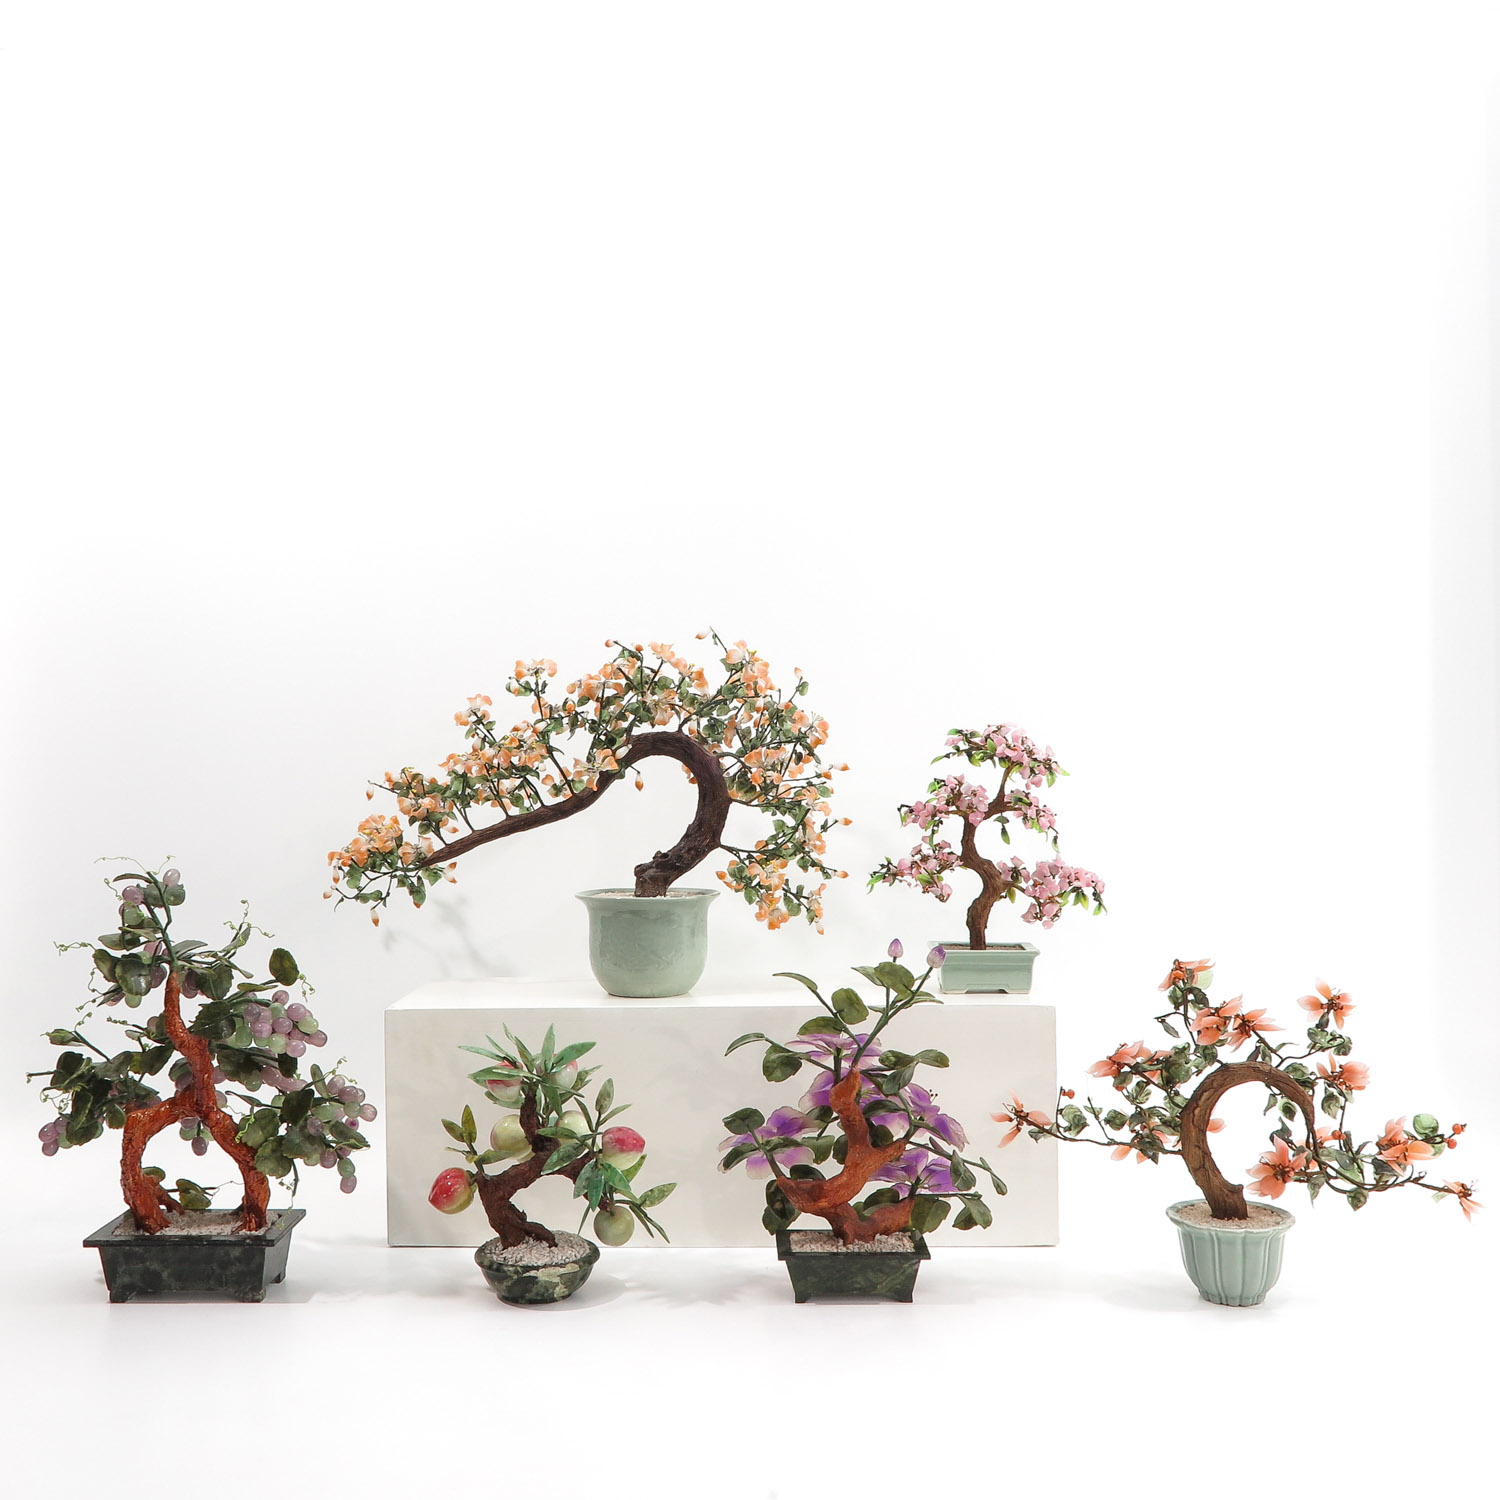 A Collection of Floral Arrangements - Image 3 of 10